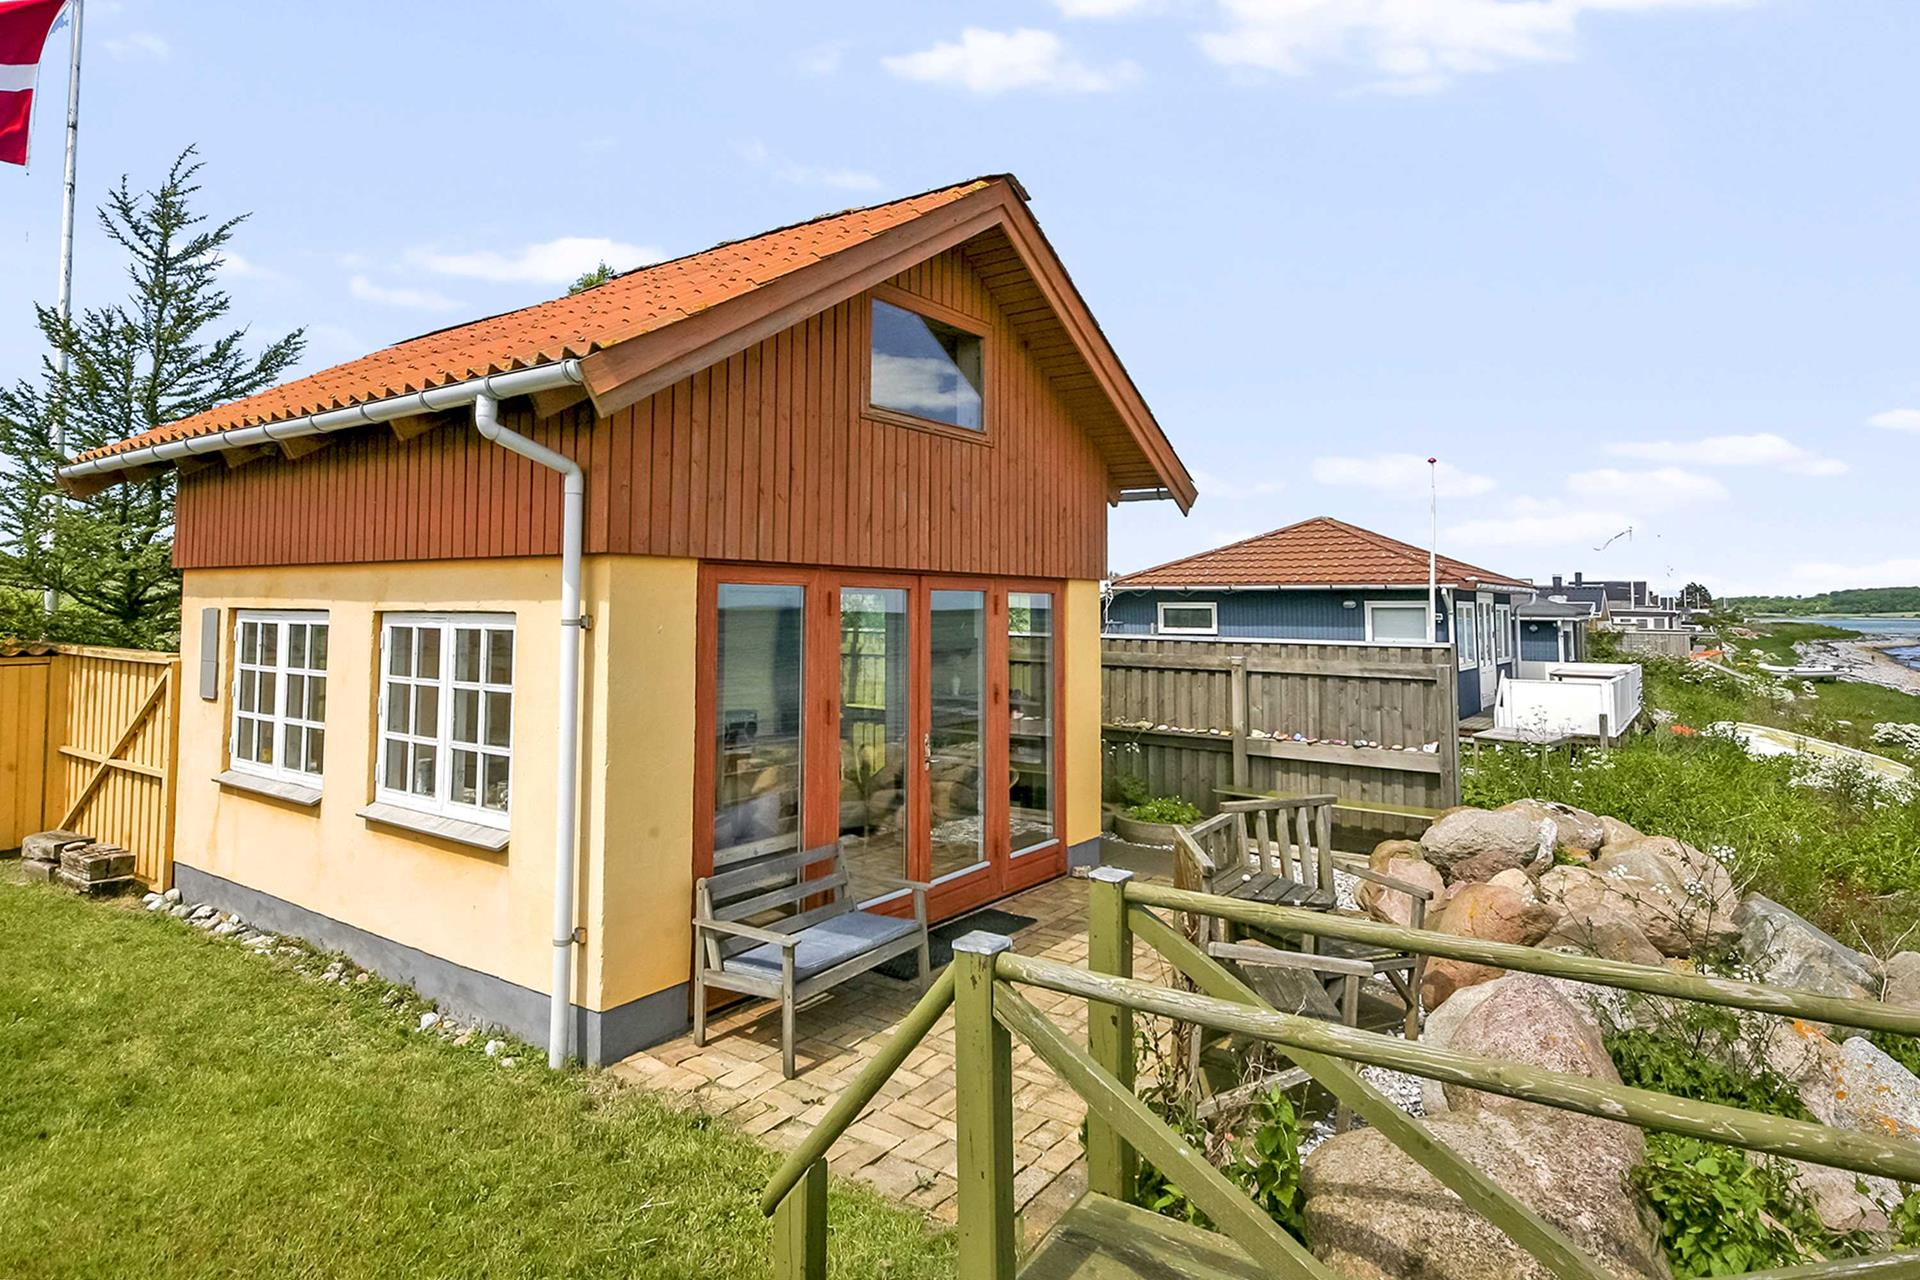 This Tiny Beachfront Cottage In Denmark Has 172 Sq Ft On The Ground Floor  Plus A